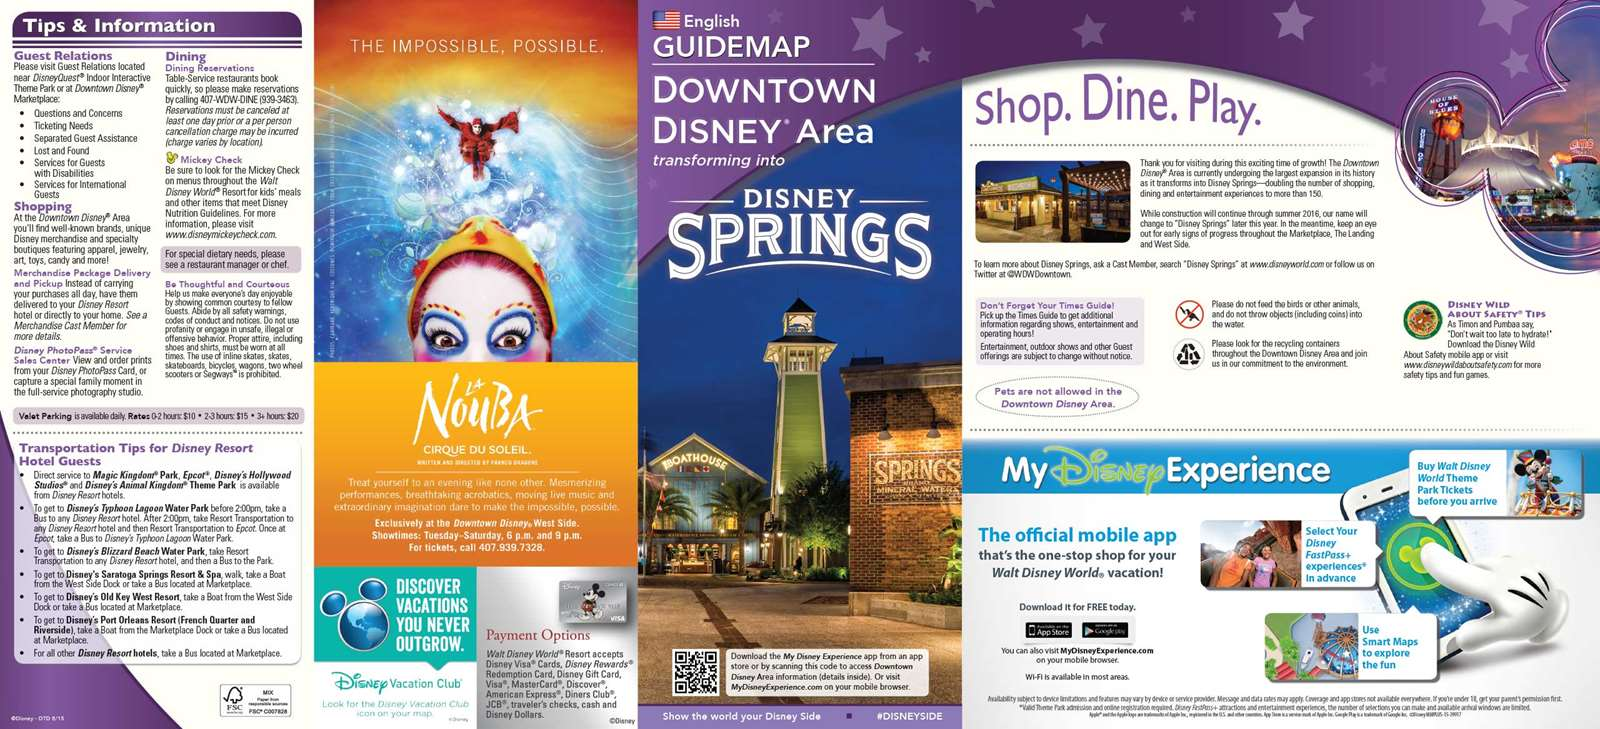 Photos new downtown disney guide map includes disney springs name photos new downtown disney guide map includes disney springs name and new restaurants gumiabroncs Gallery